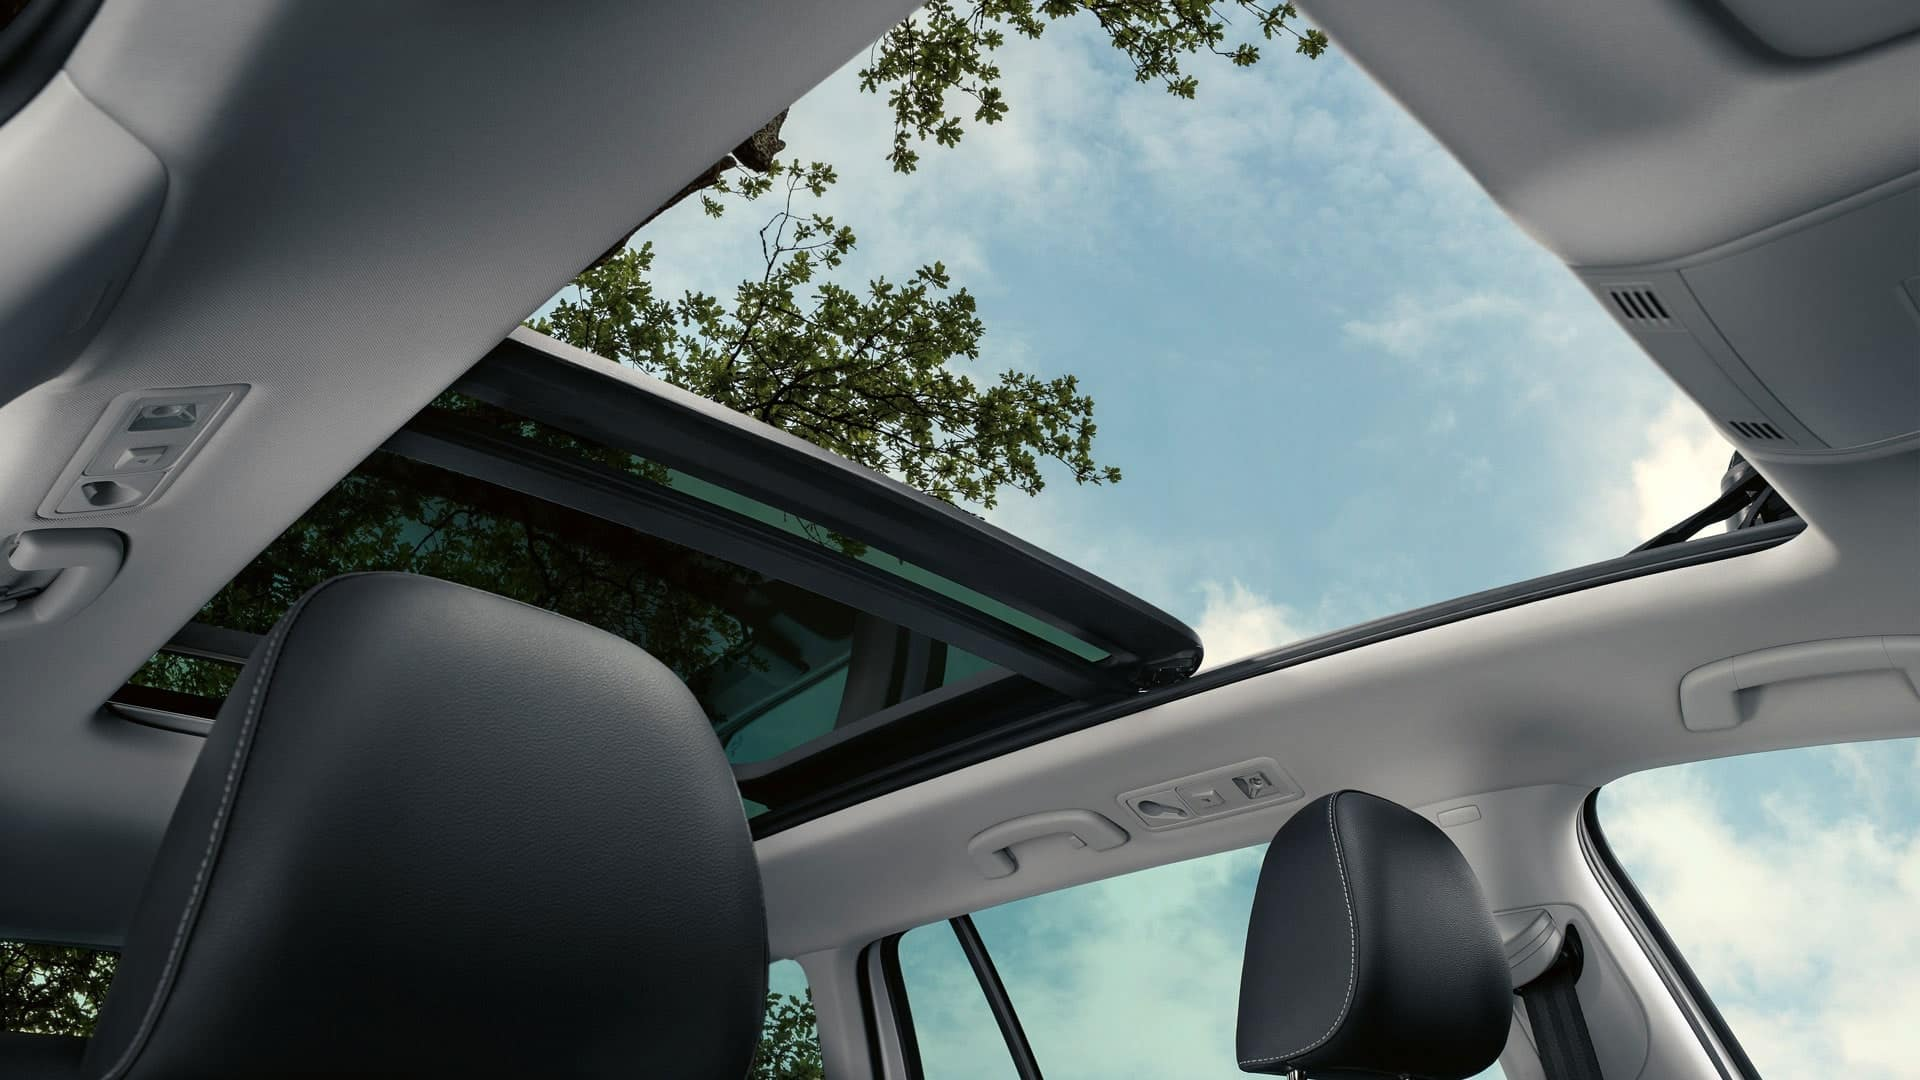 2019 VW SportWagen panoramic sunroof